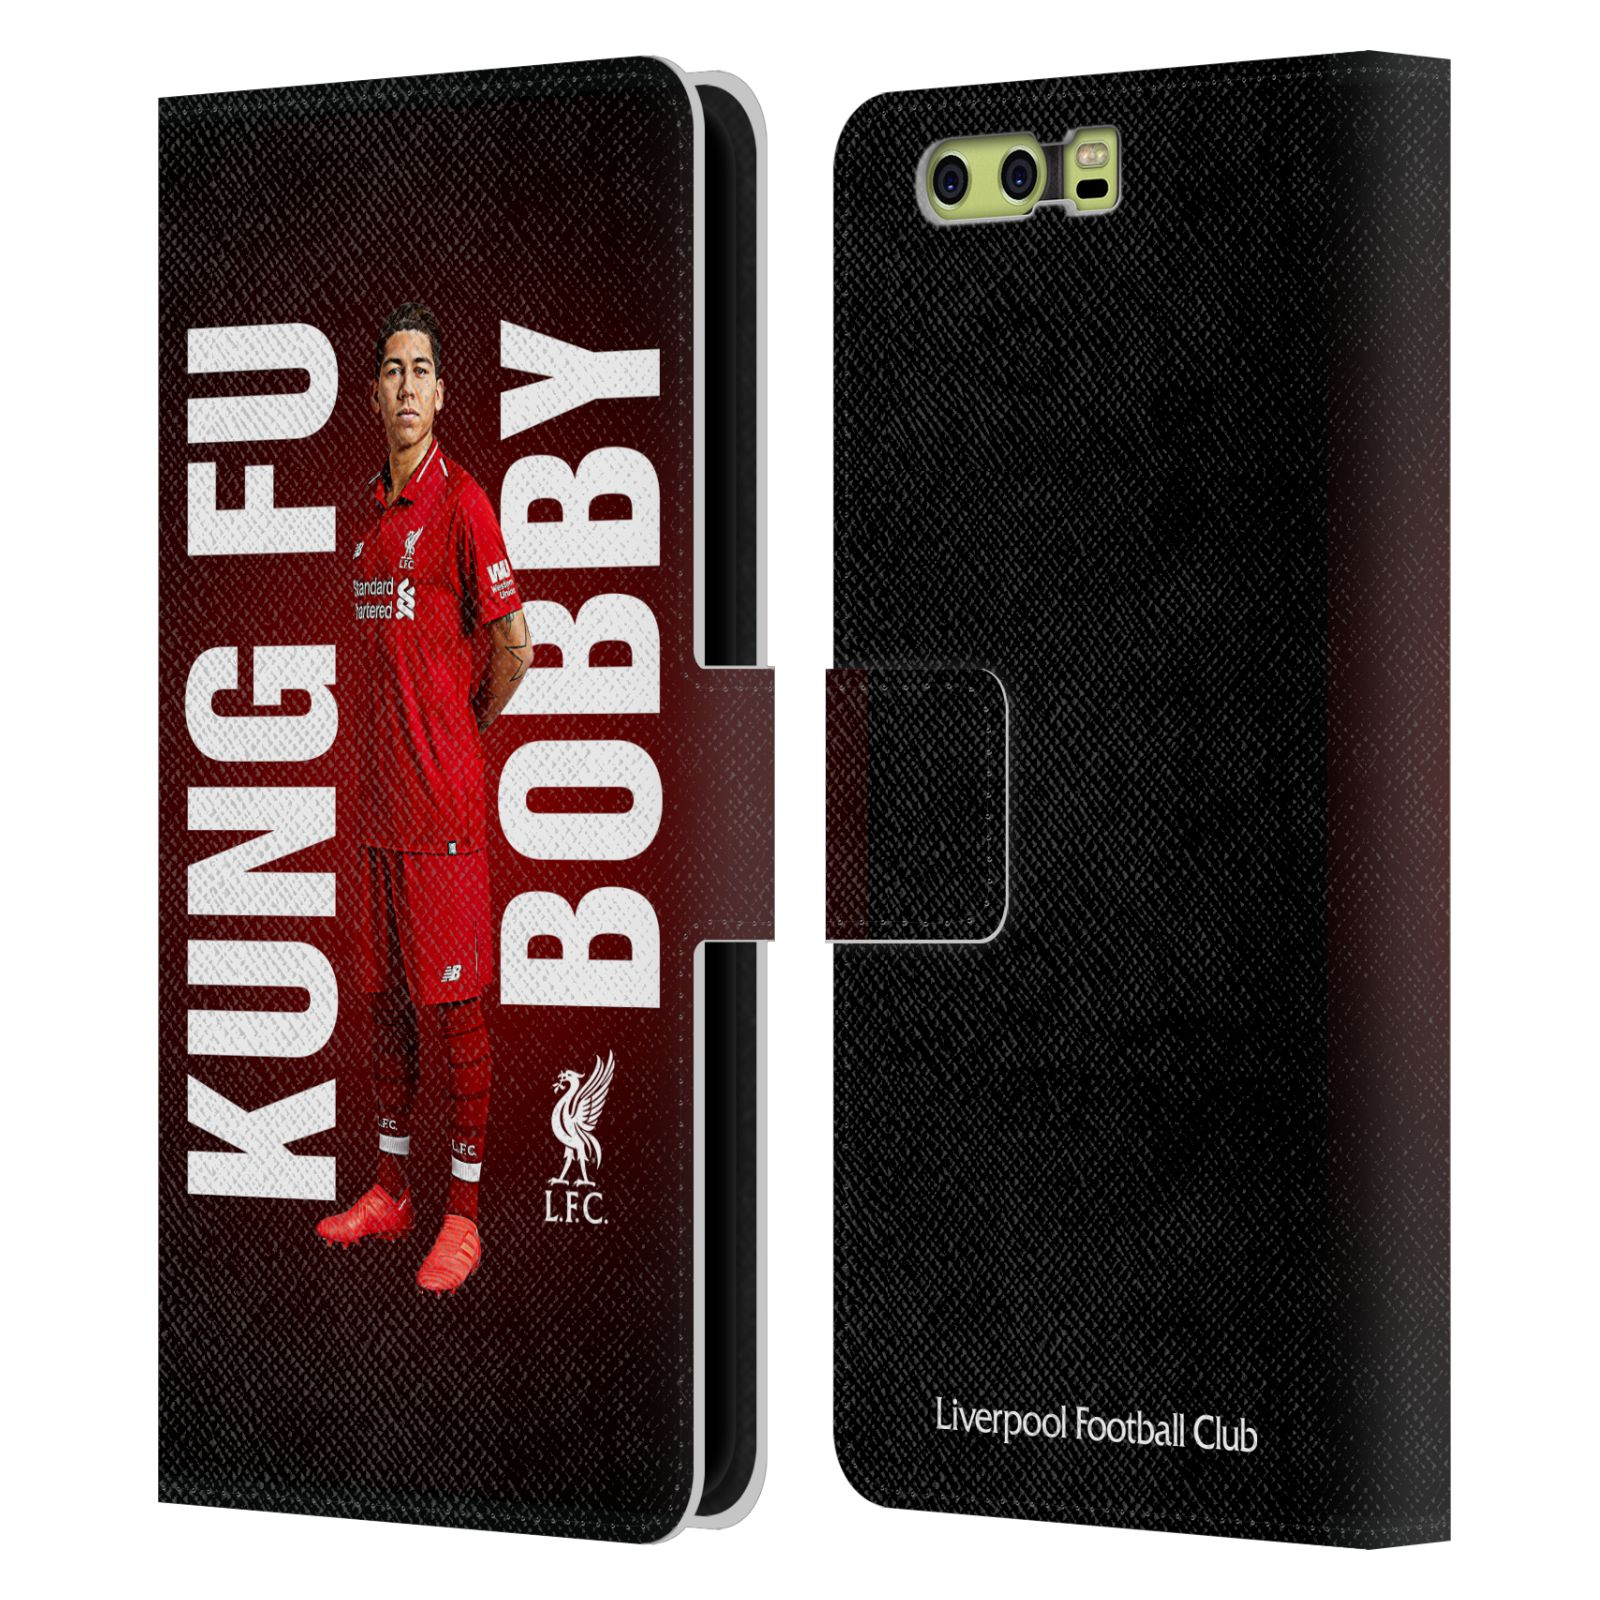 LIVERPOOL-FC-LFC-2018-19-STAR-TRIO-PU-LEATHER-BOOK-WALLET-CASE-FOR-HUAWEI-PHONES